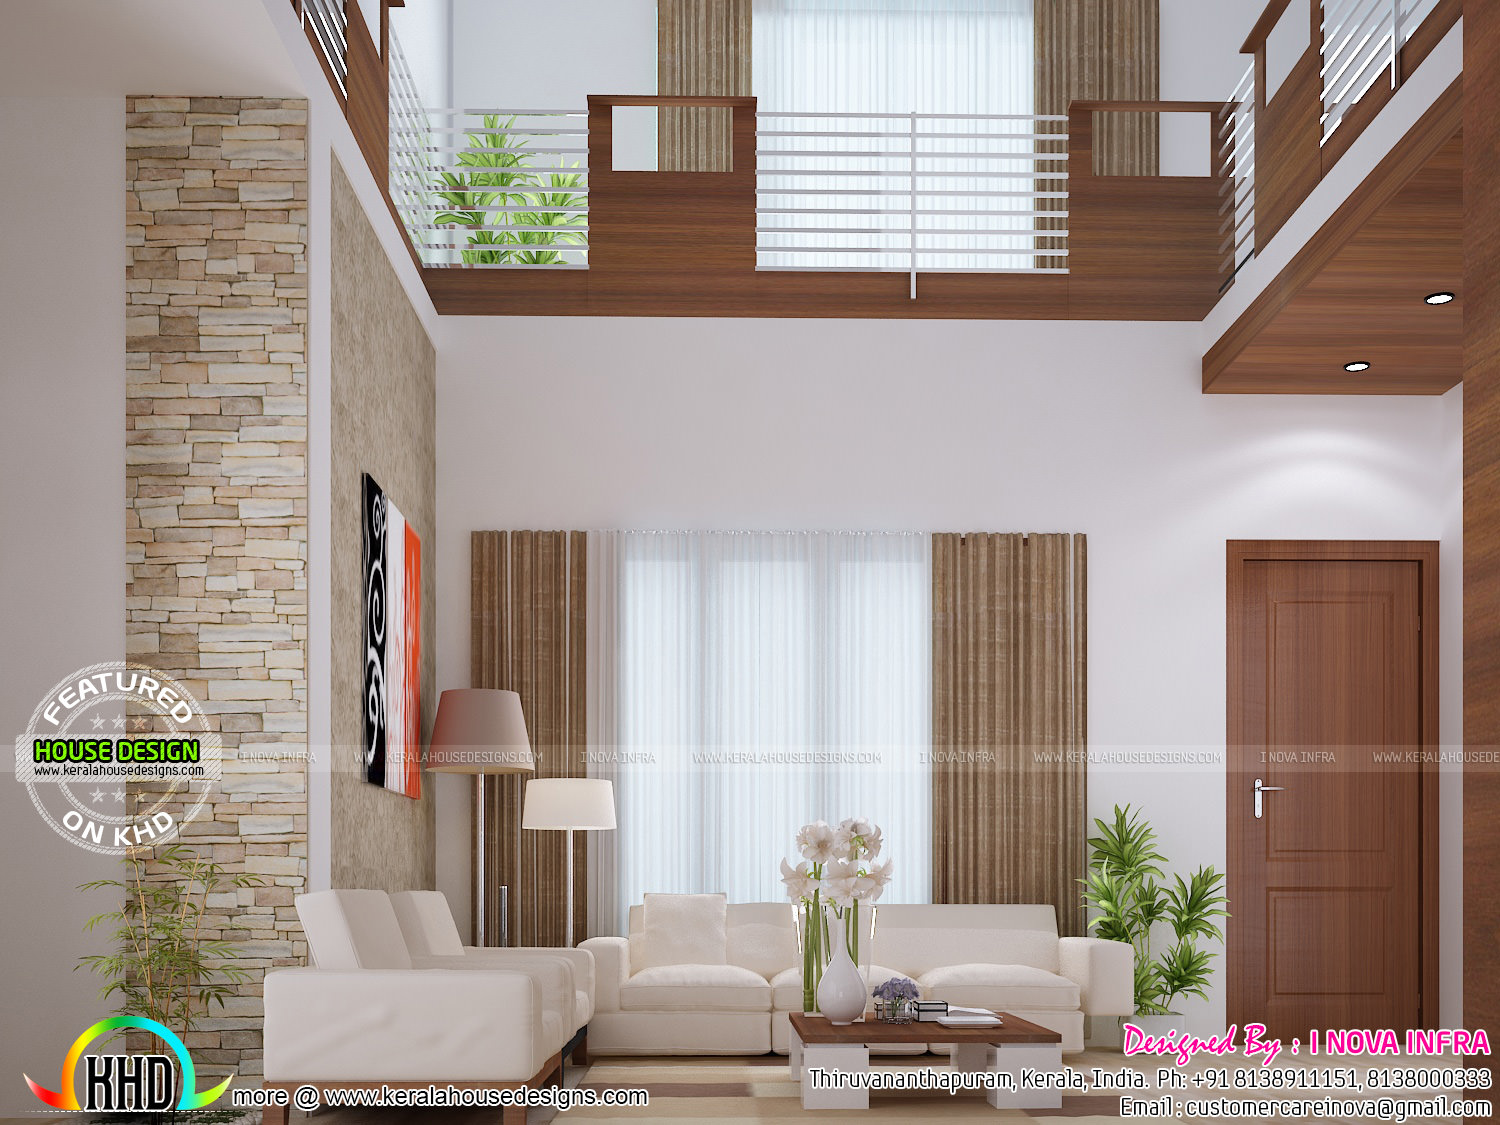 Balcony dining bedroom and staircase interior kerala for Balcony living room design